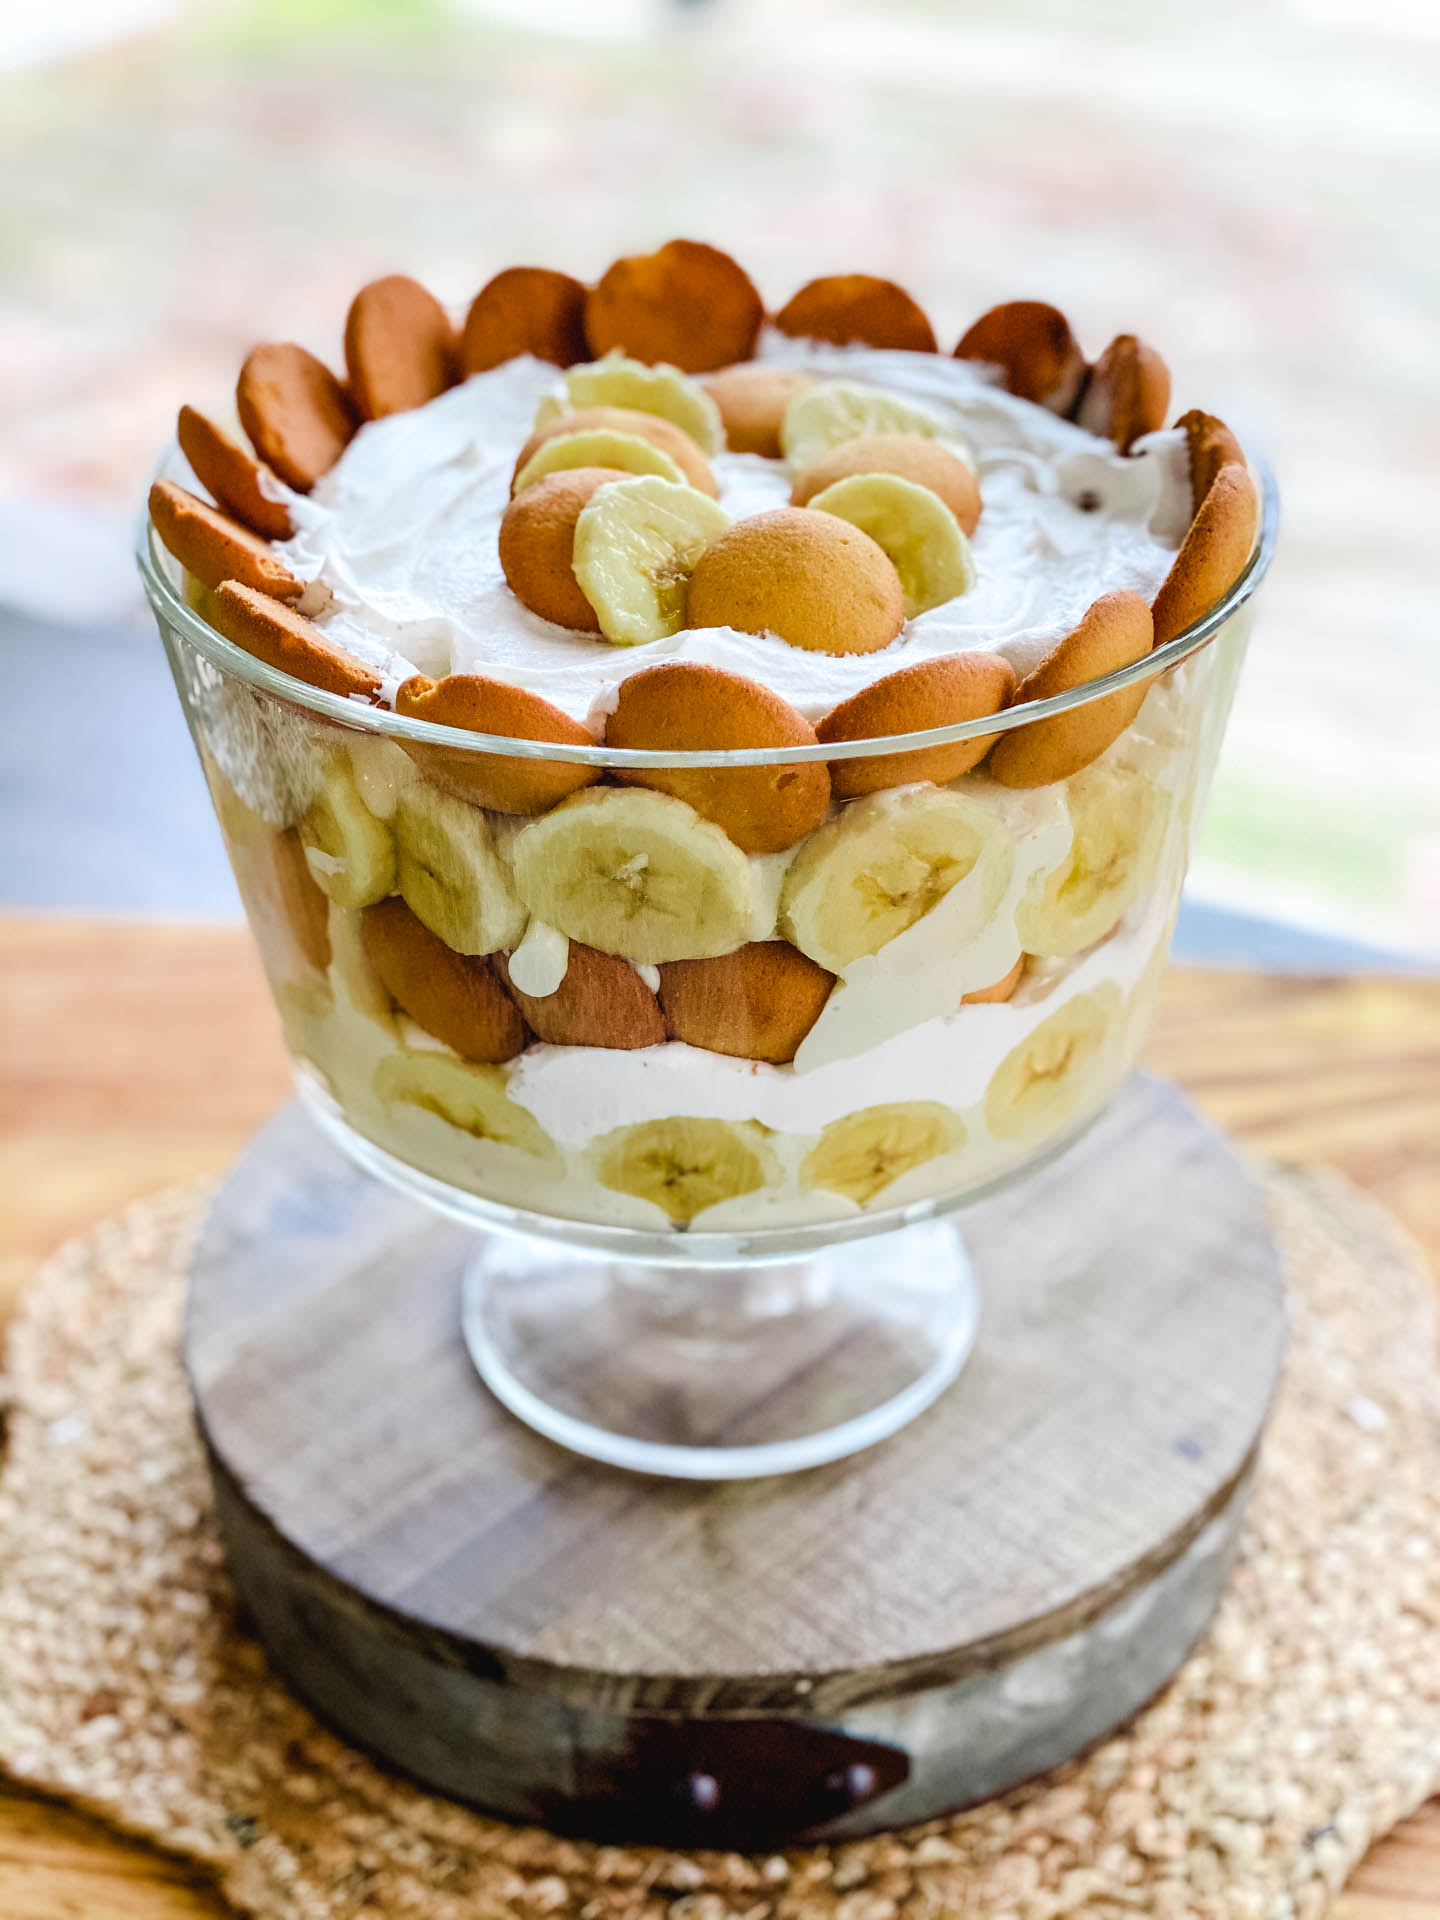 Bananas, pudding, whipped cream, and cookies in a glass bowl on a brown stand.